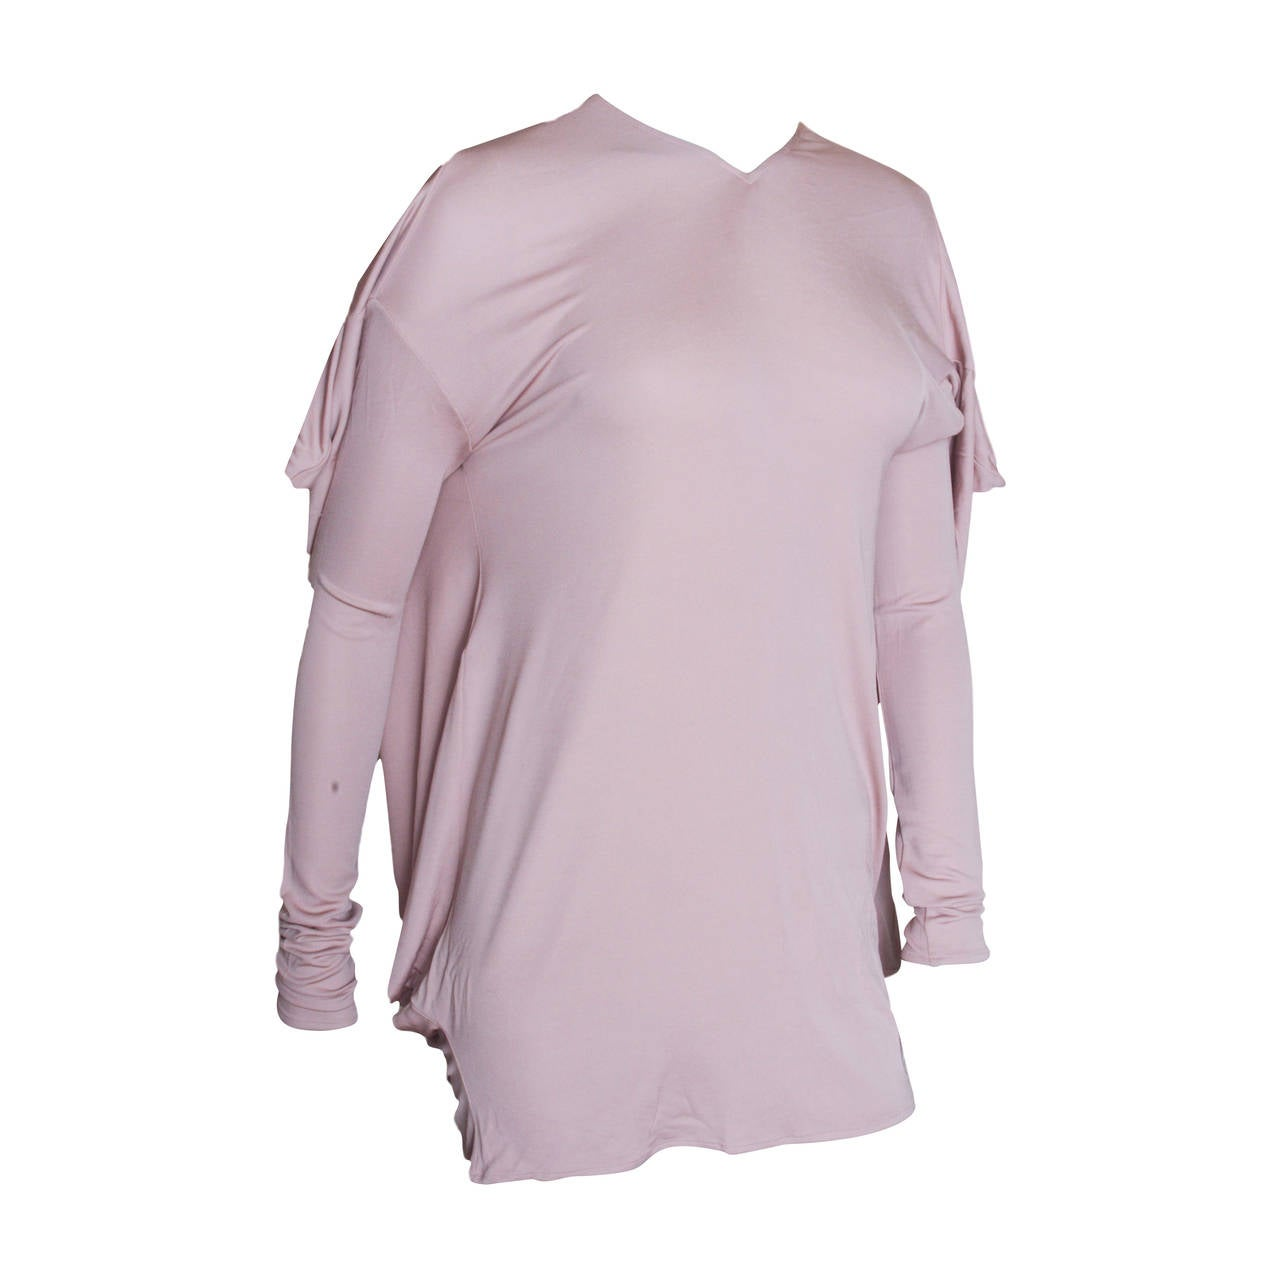 Maison Martin Margiela Draped Jersey Top